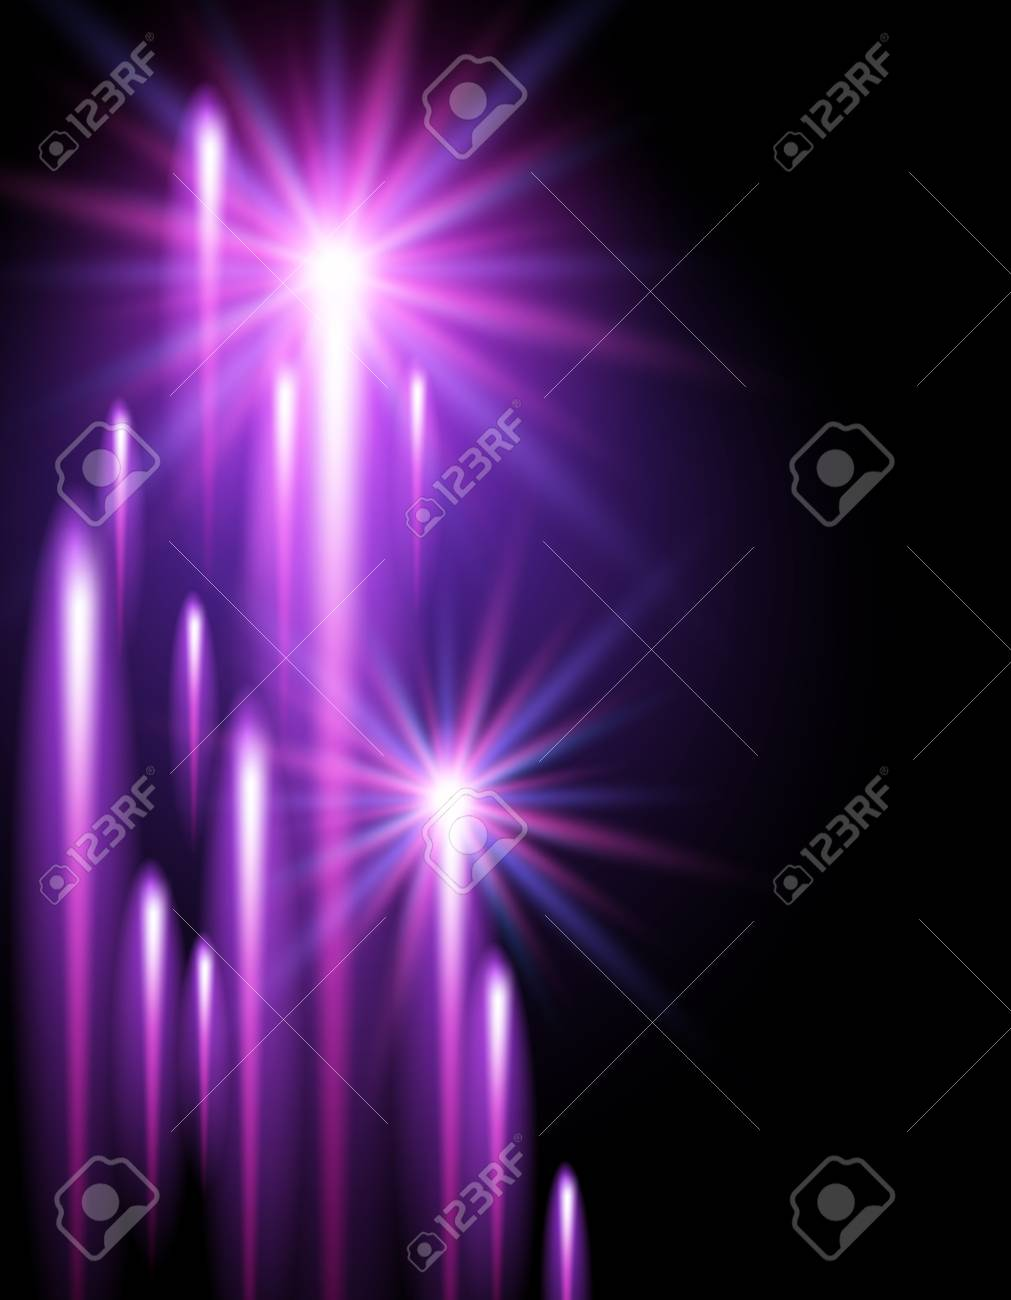 Glowing background with shining stars and neon strips Stock Vector - 21881693